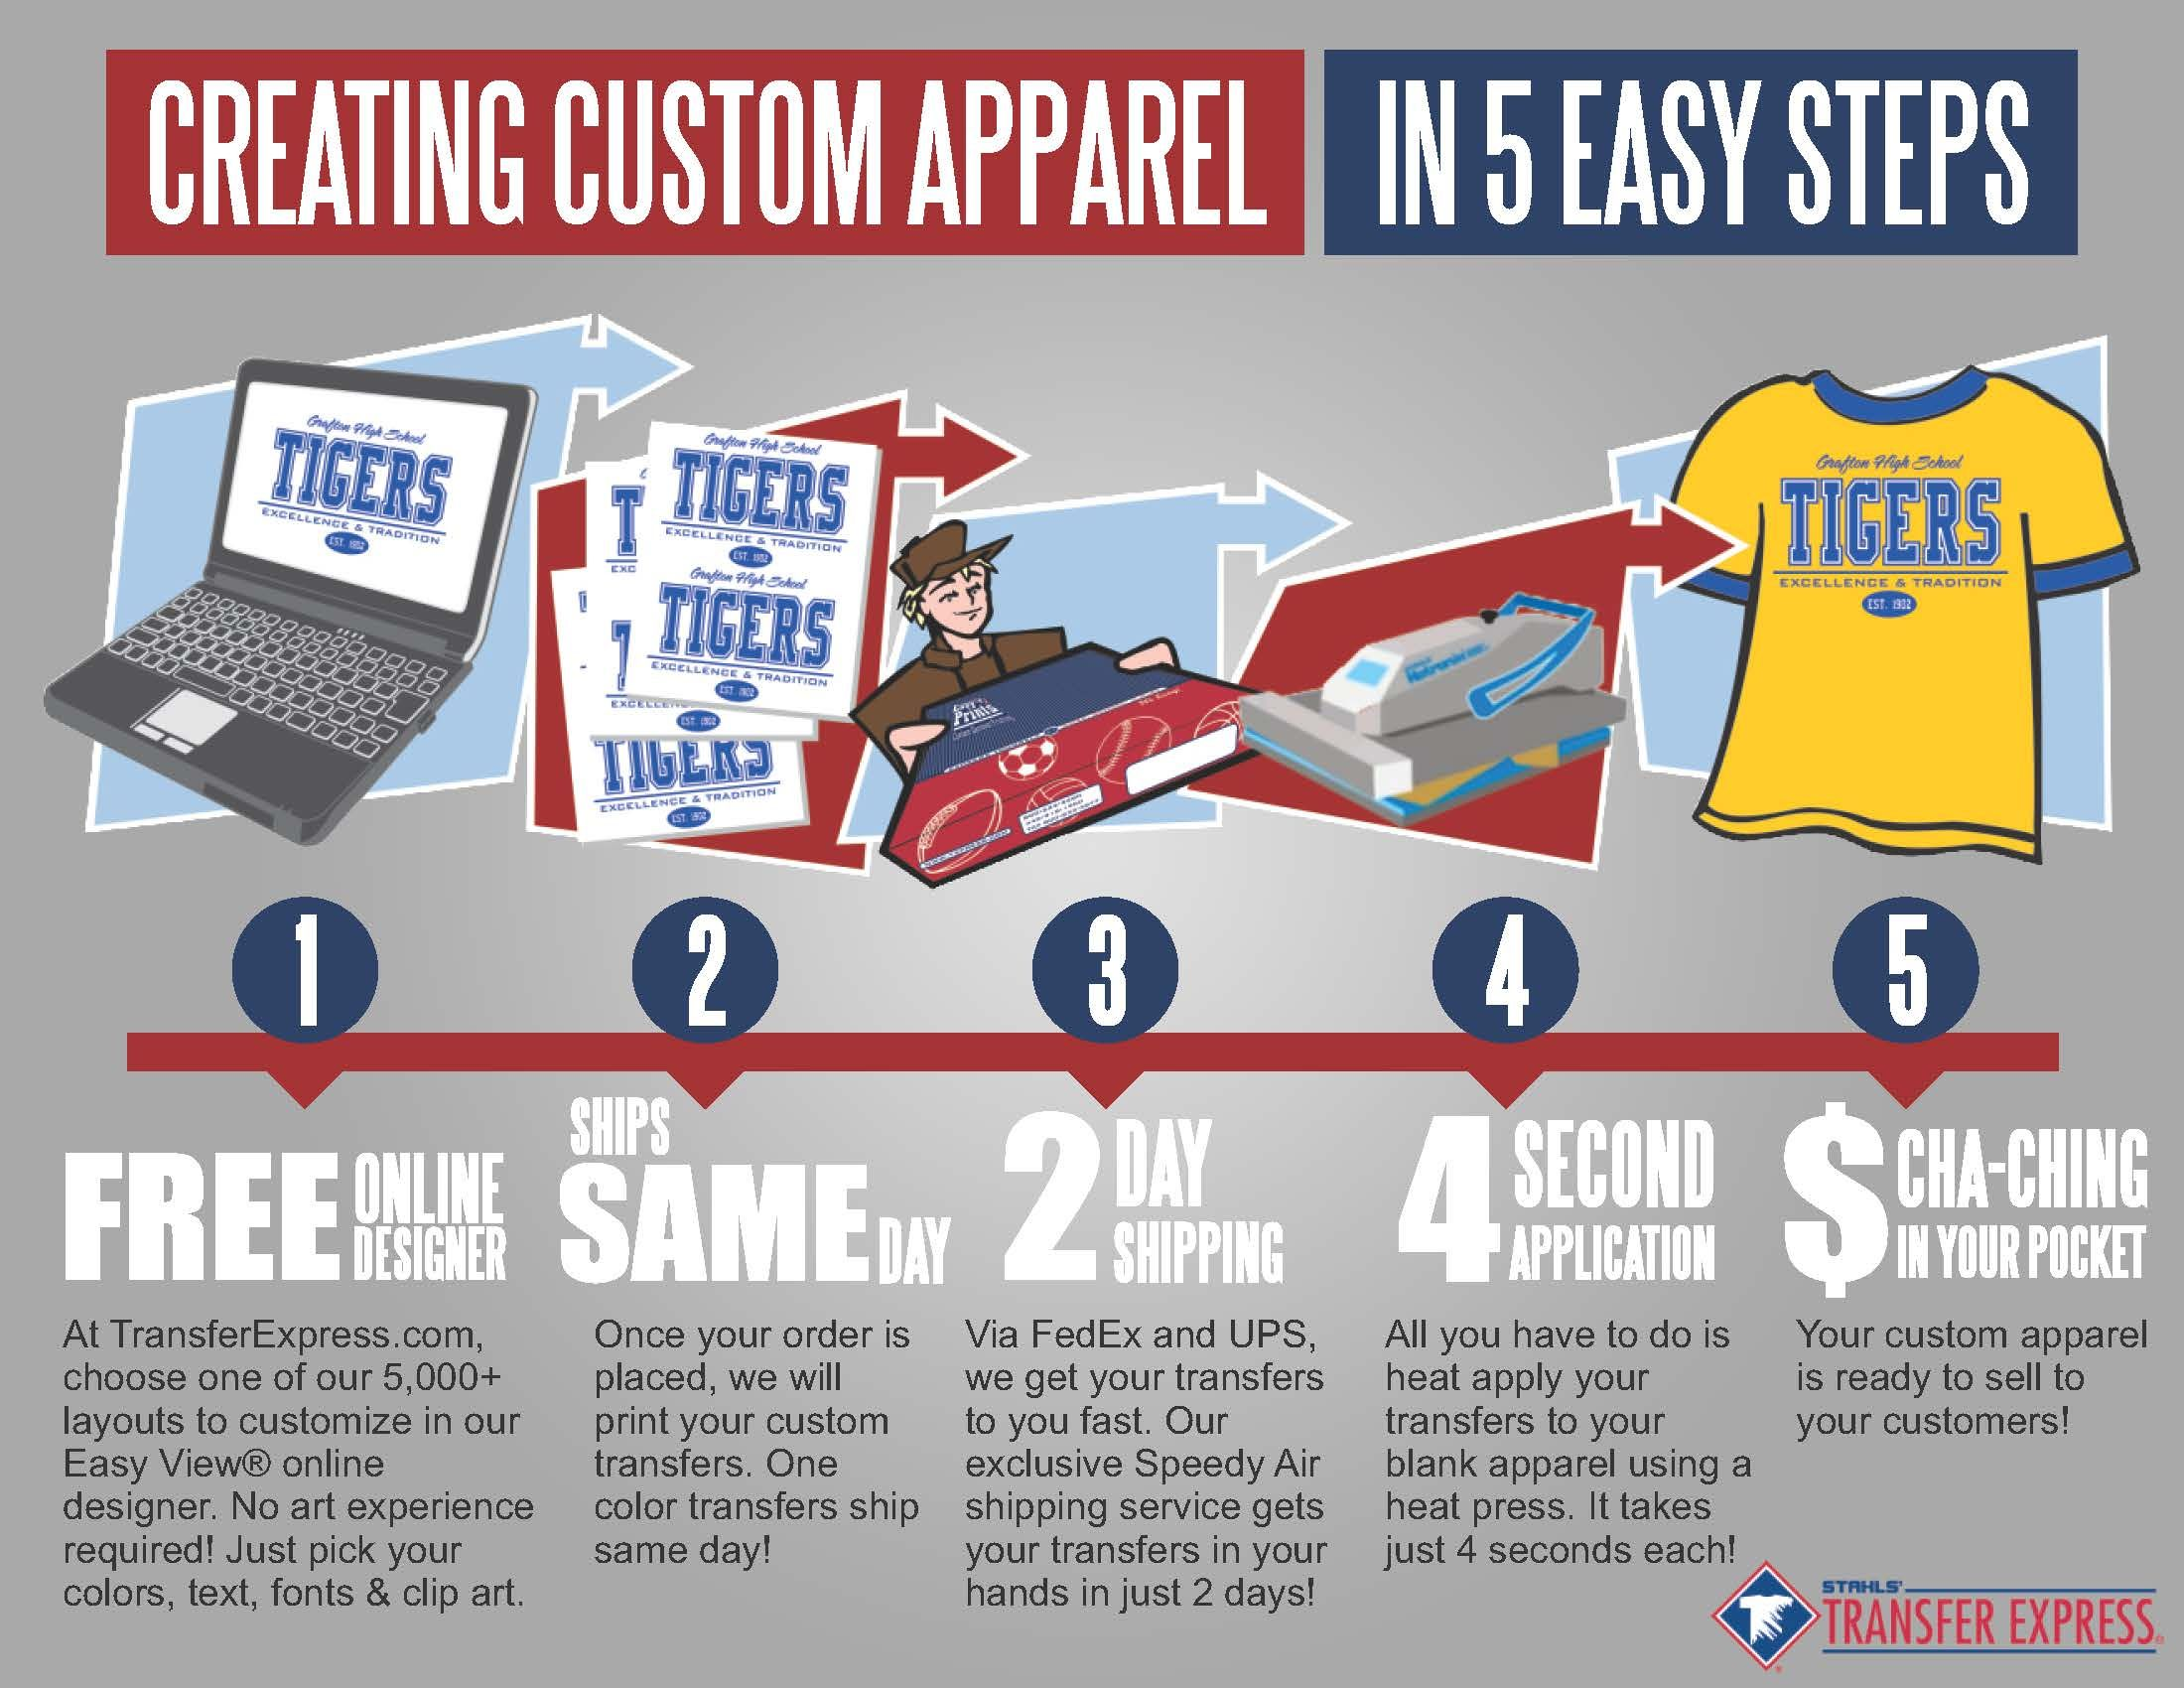 Learn 5 Easy Steps For Creating Custom Apparel With Heat Transfers